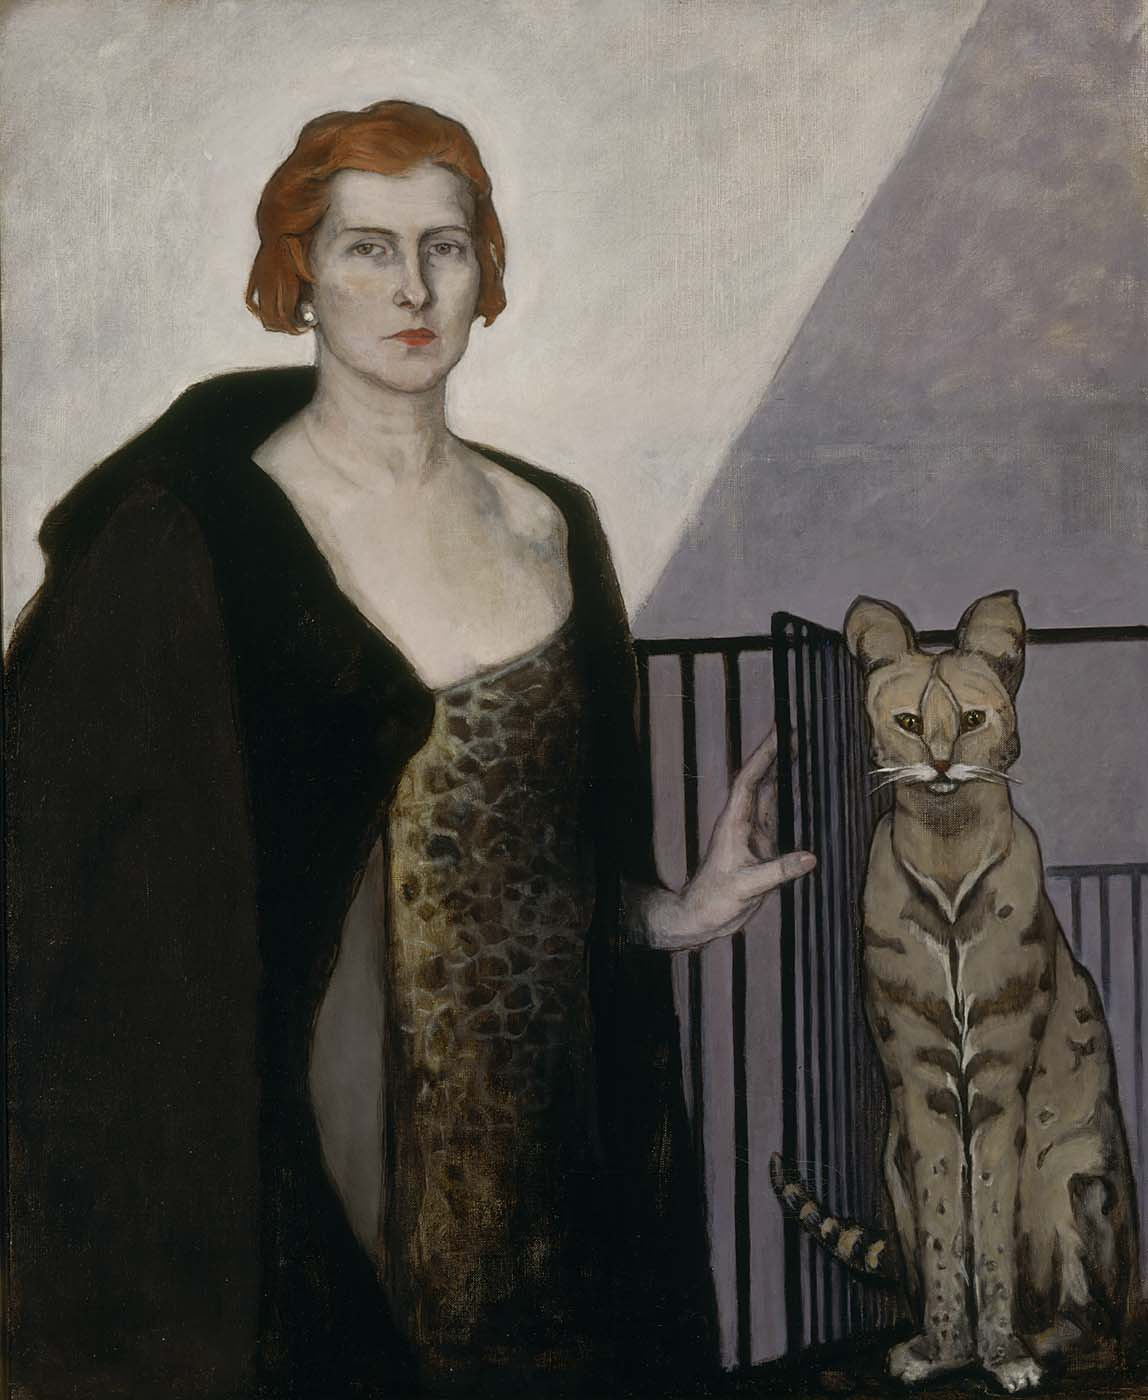 Romaine Brooks, La Baronne Emile D'Erlanger, about 1924